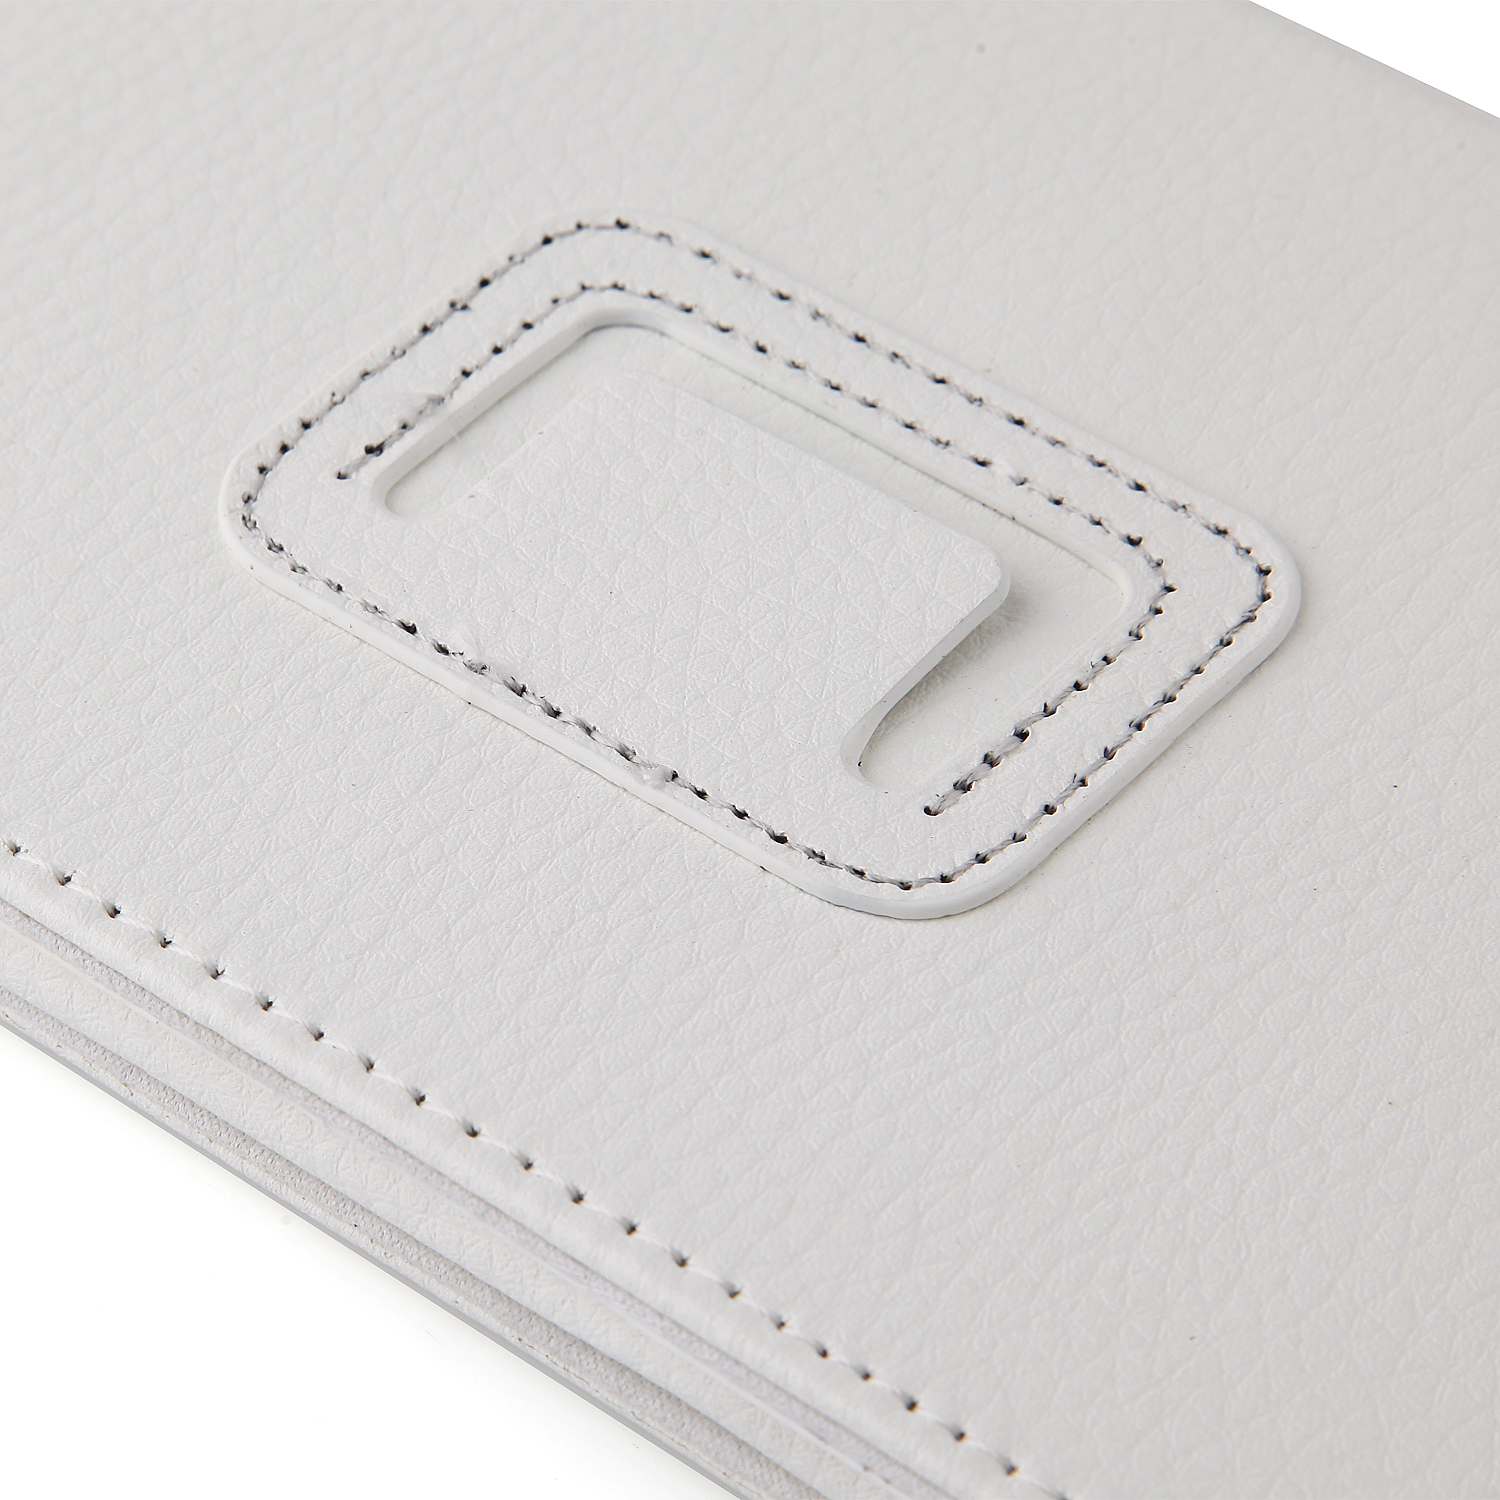 Protective PU Leather Stand Case Cover for Lenovo S5000 Tablet PC White